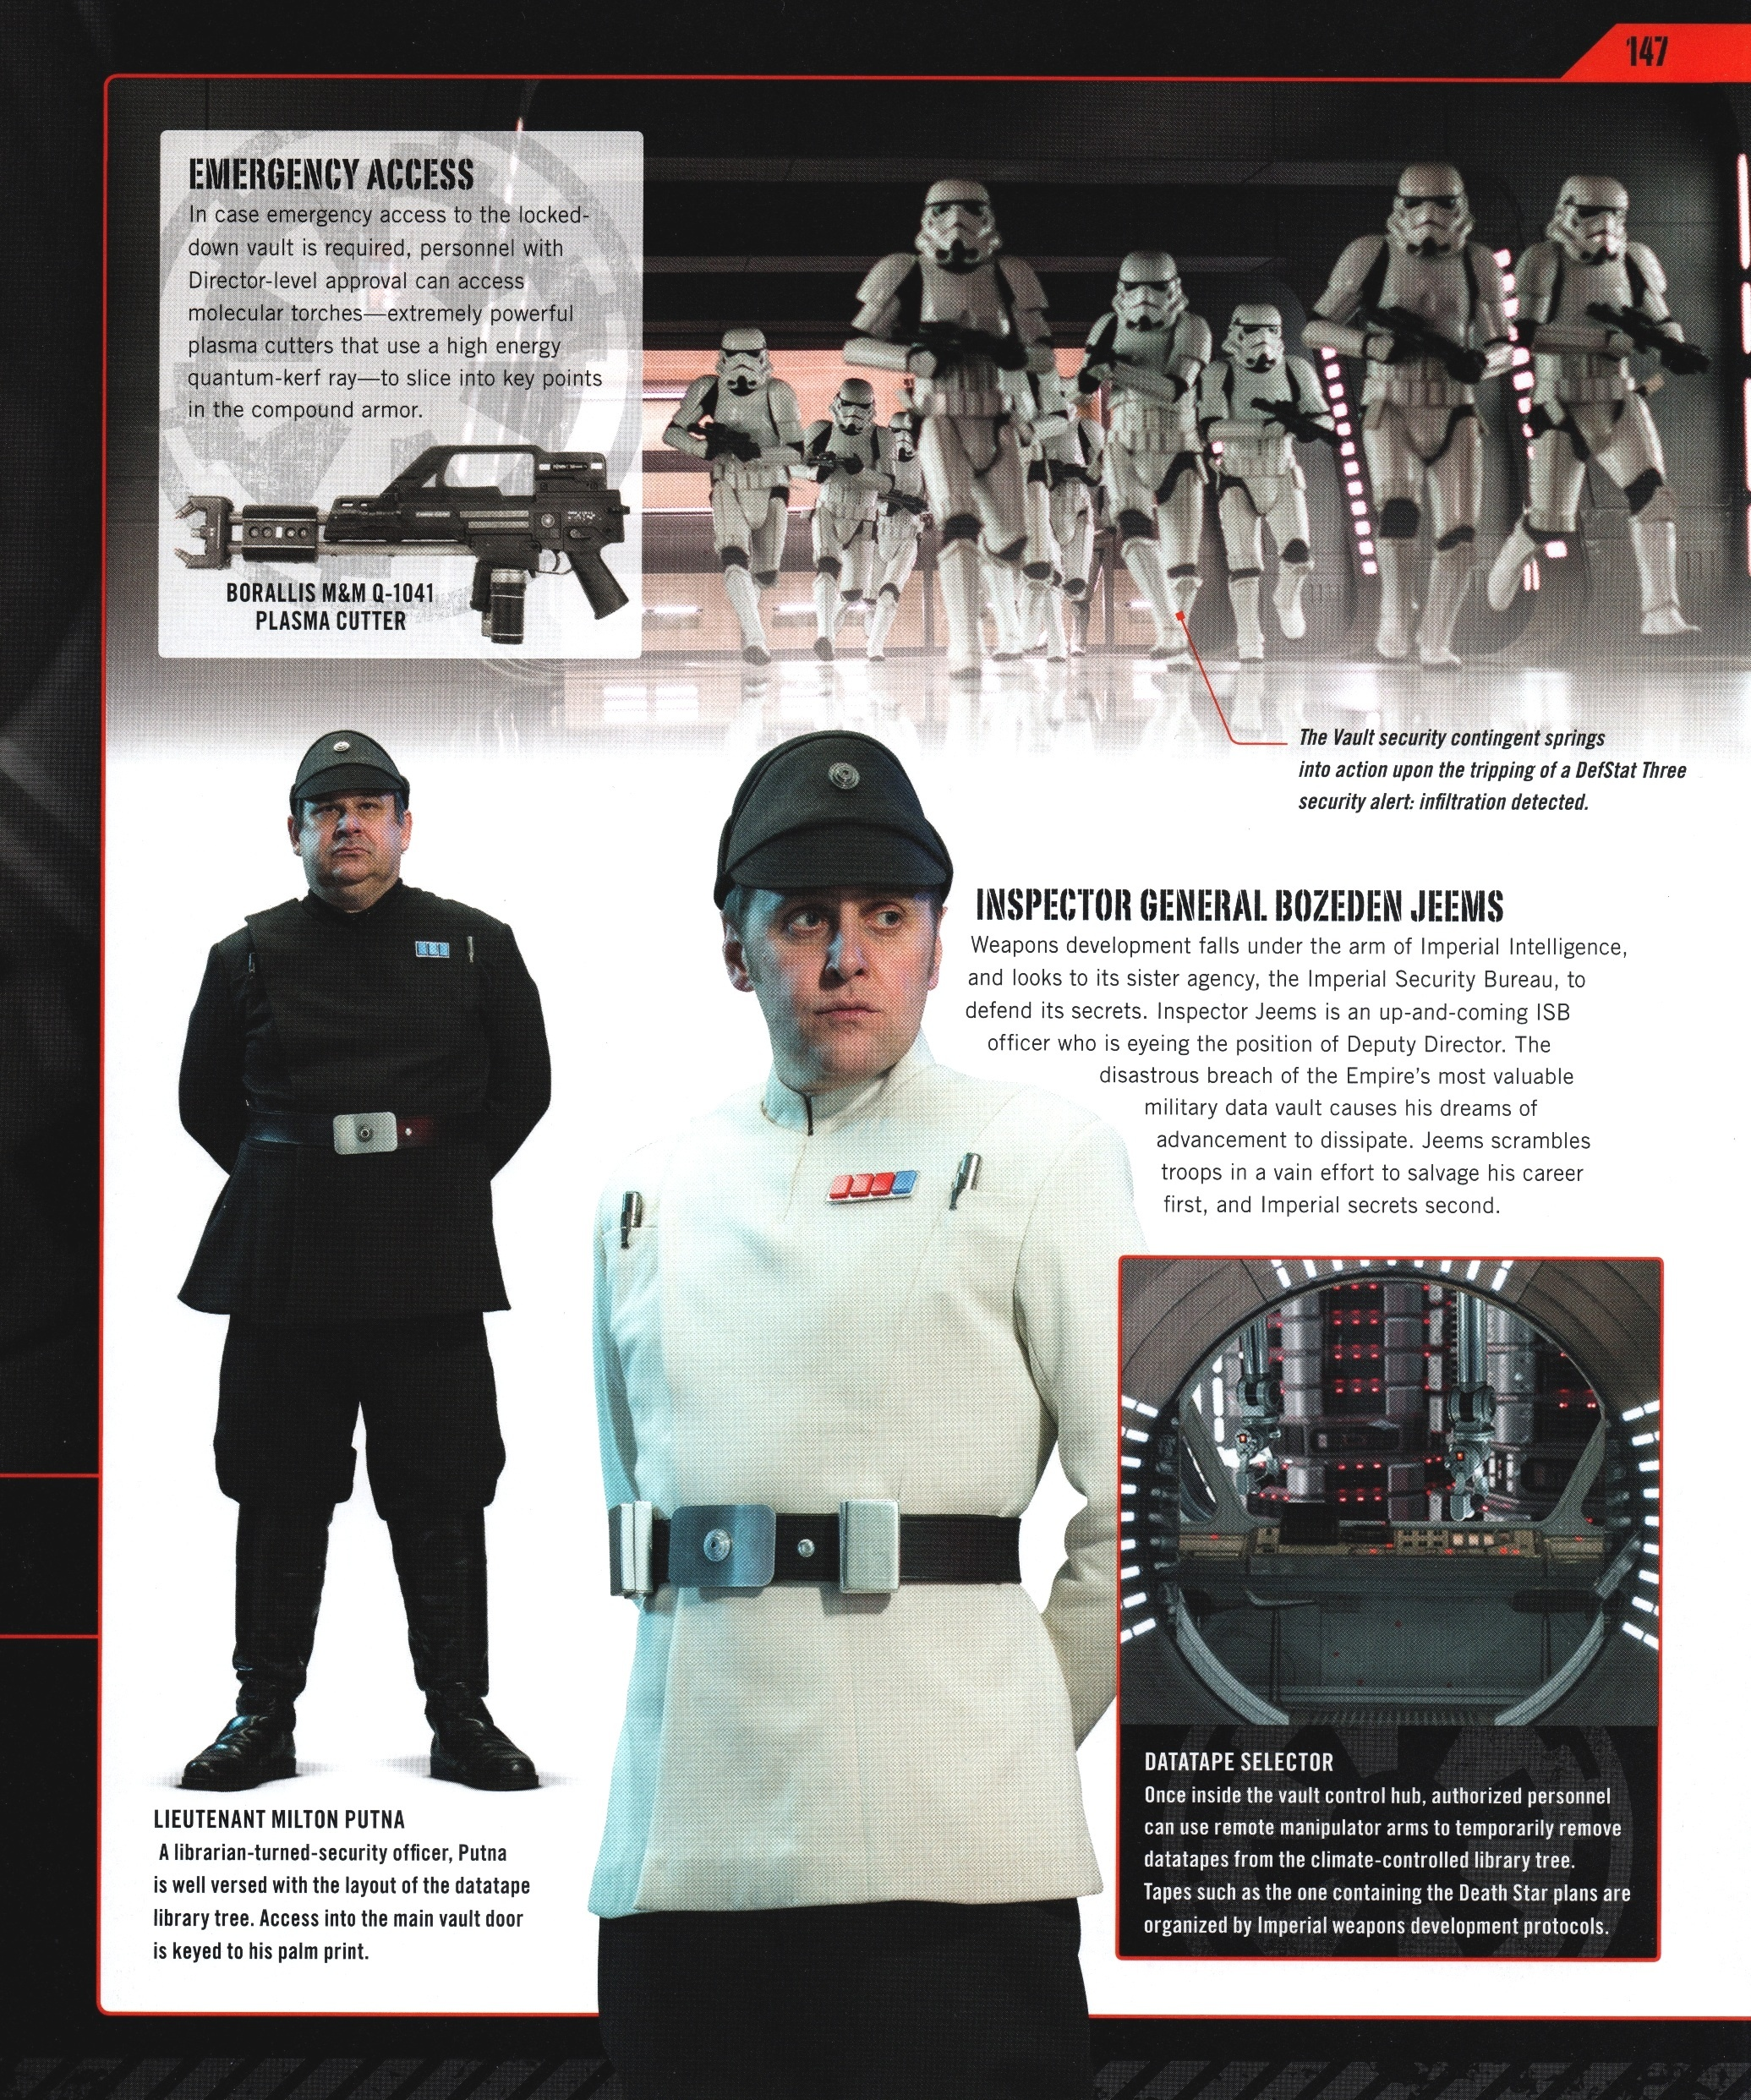 Rogue One Ultimate Visual Guide (b0bafett_Empire) p147